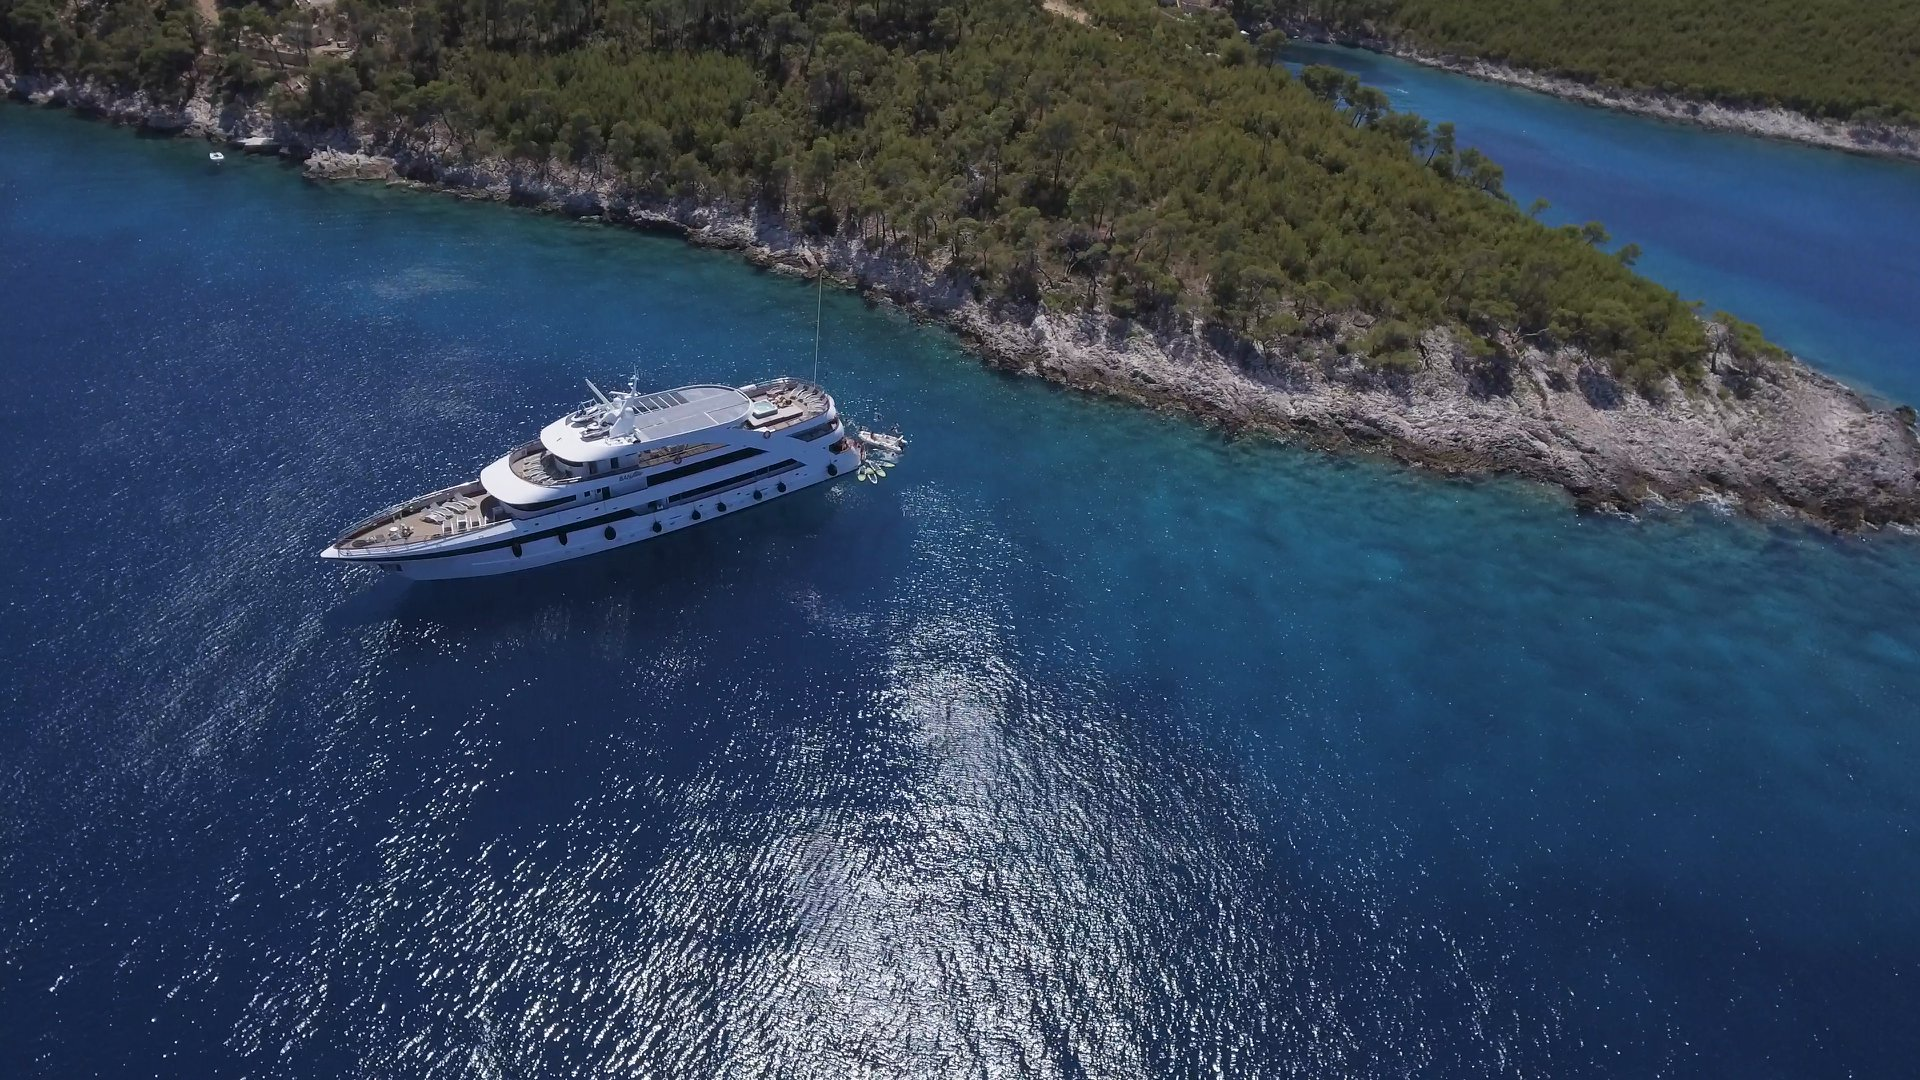 Adriatic Discovery Cruise from Dubrovnik to Split on Ban 13